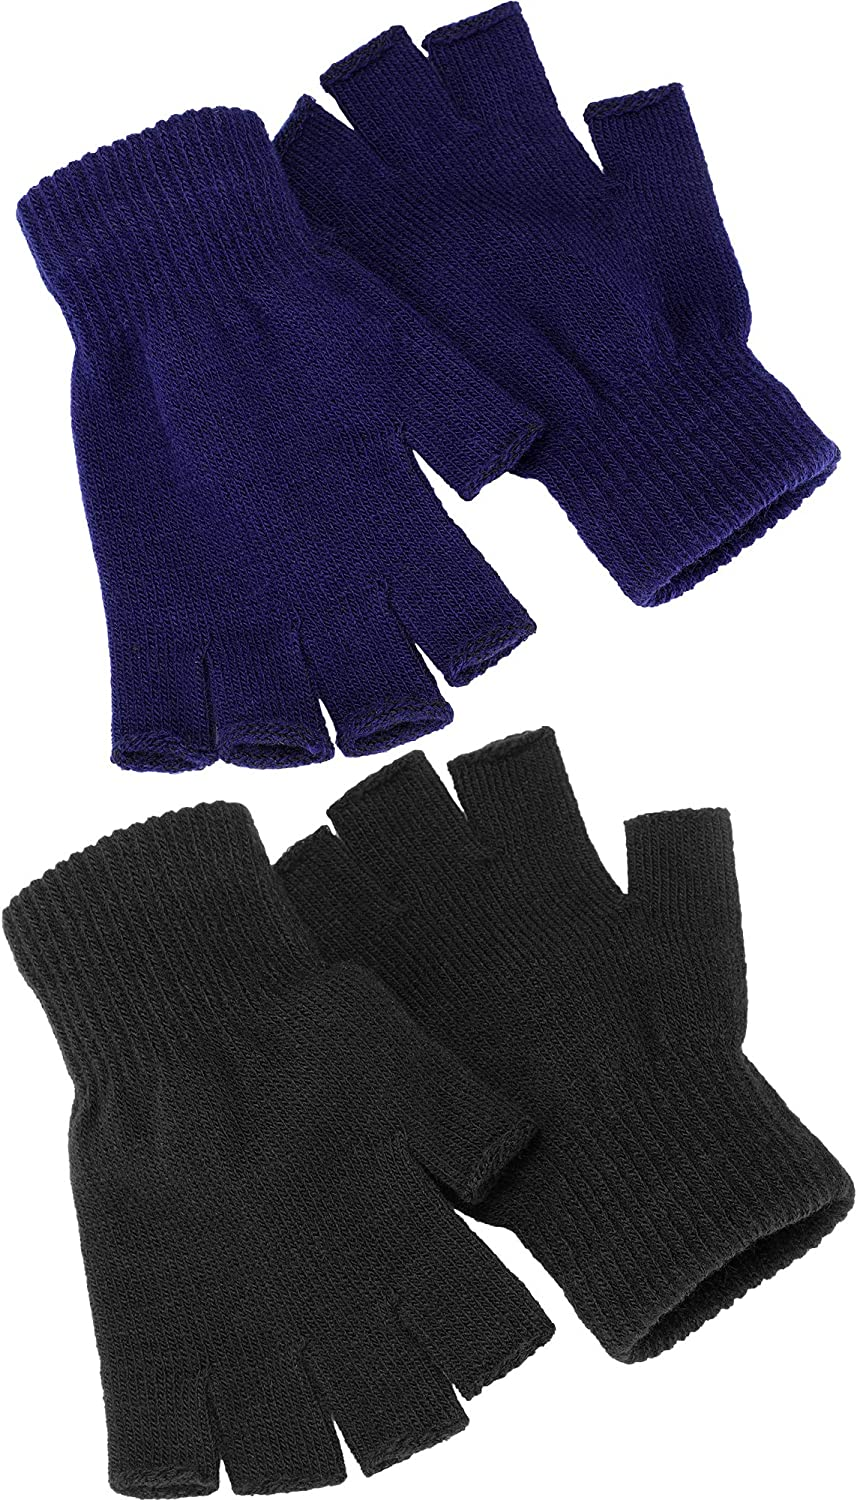 Satinior 2 Pair Unisex Half Finger Gloves Winter Stretchy Knit Fingerless Gloves in Common Size